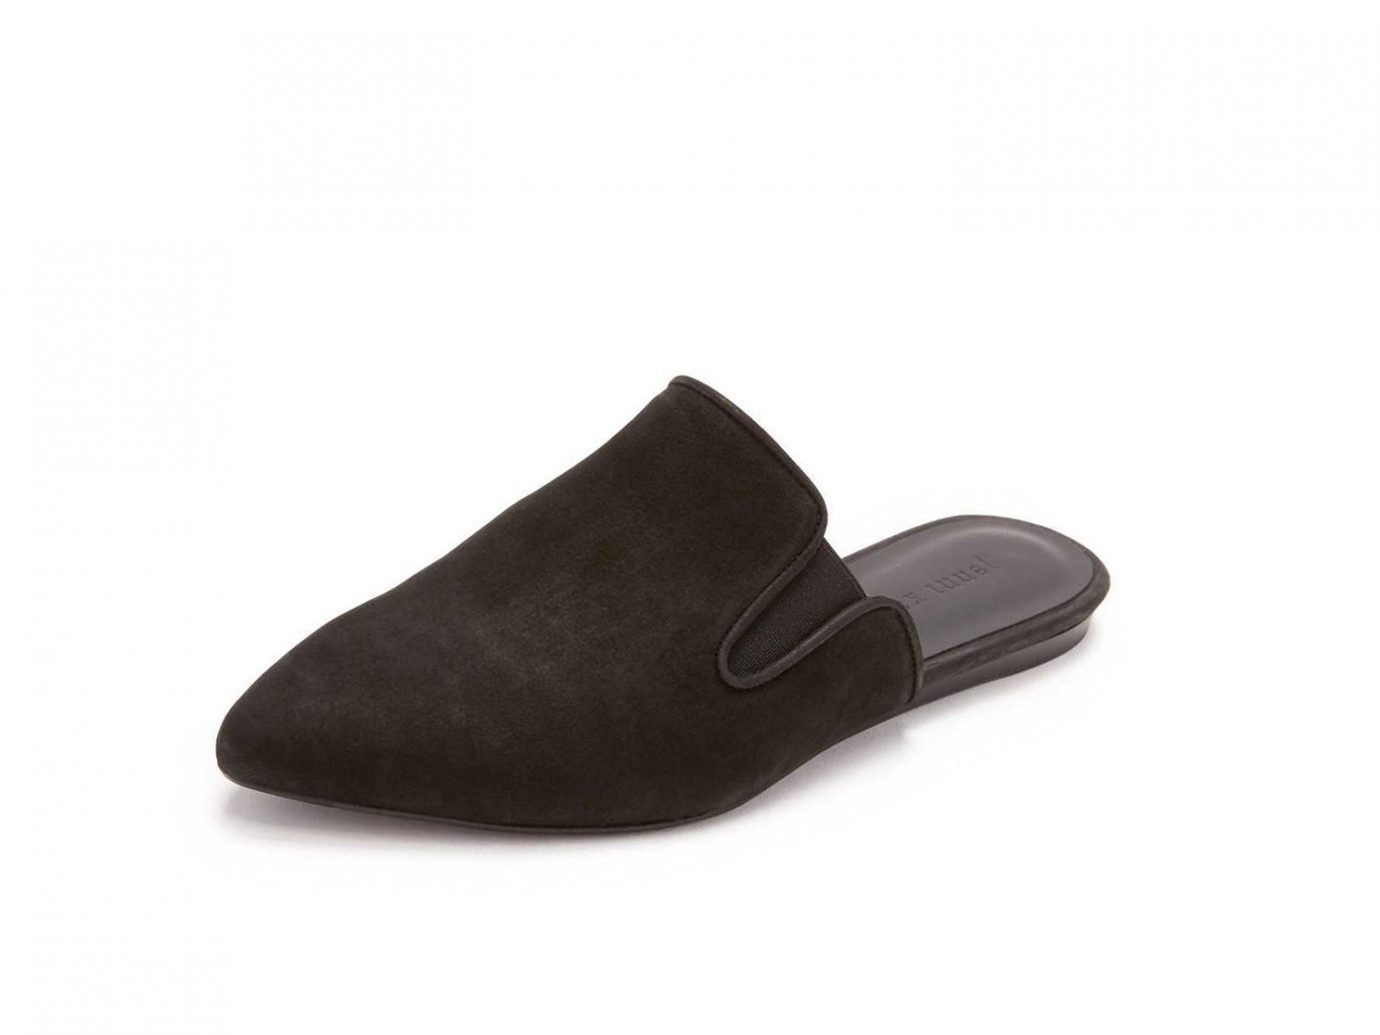 Style + Design clothing footwear shoe leather black slipper suede textile outdoor shoe material